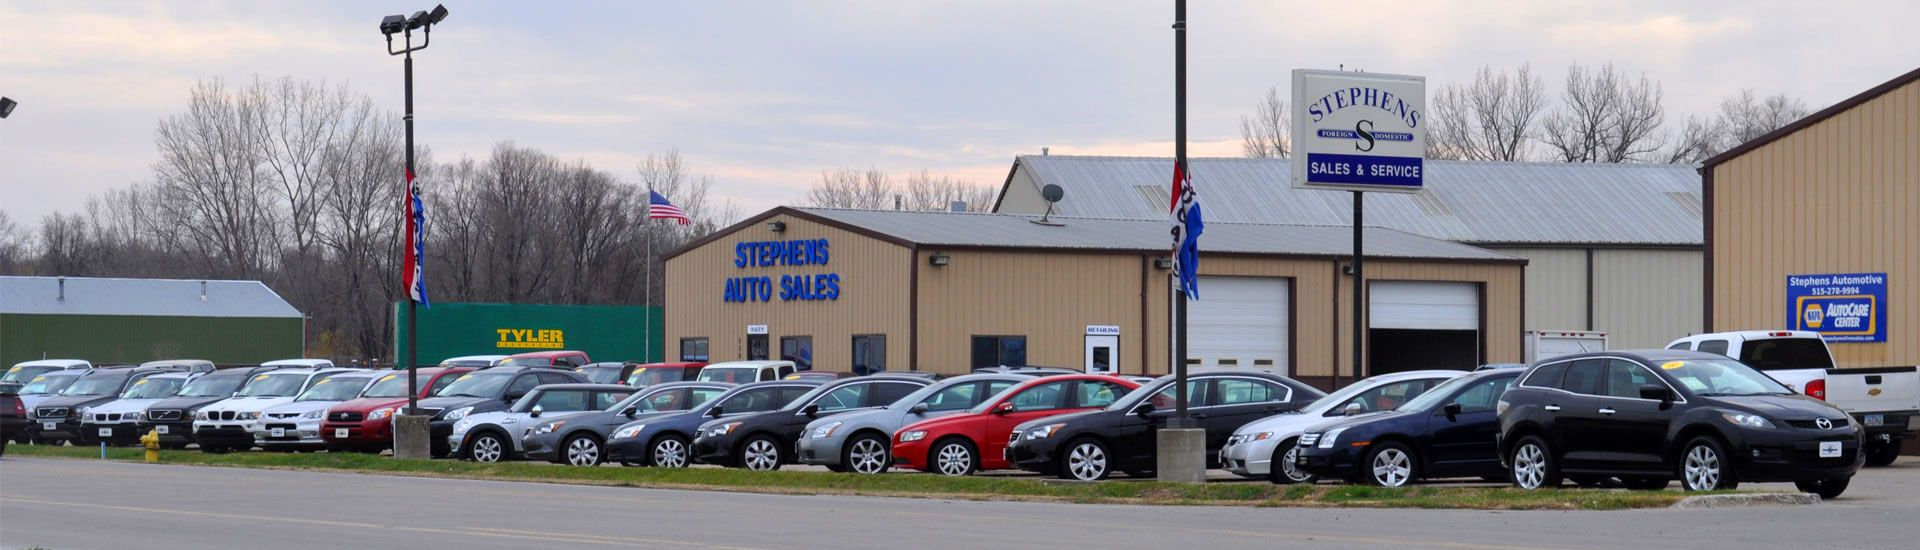 Stephens Automotive Sales Used Cars Des Moines, Iowa